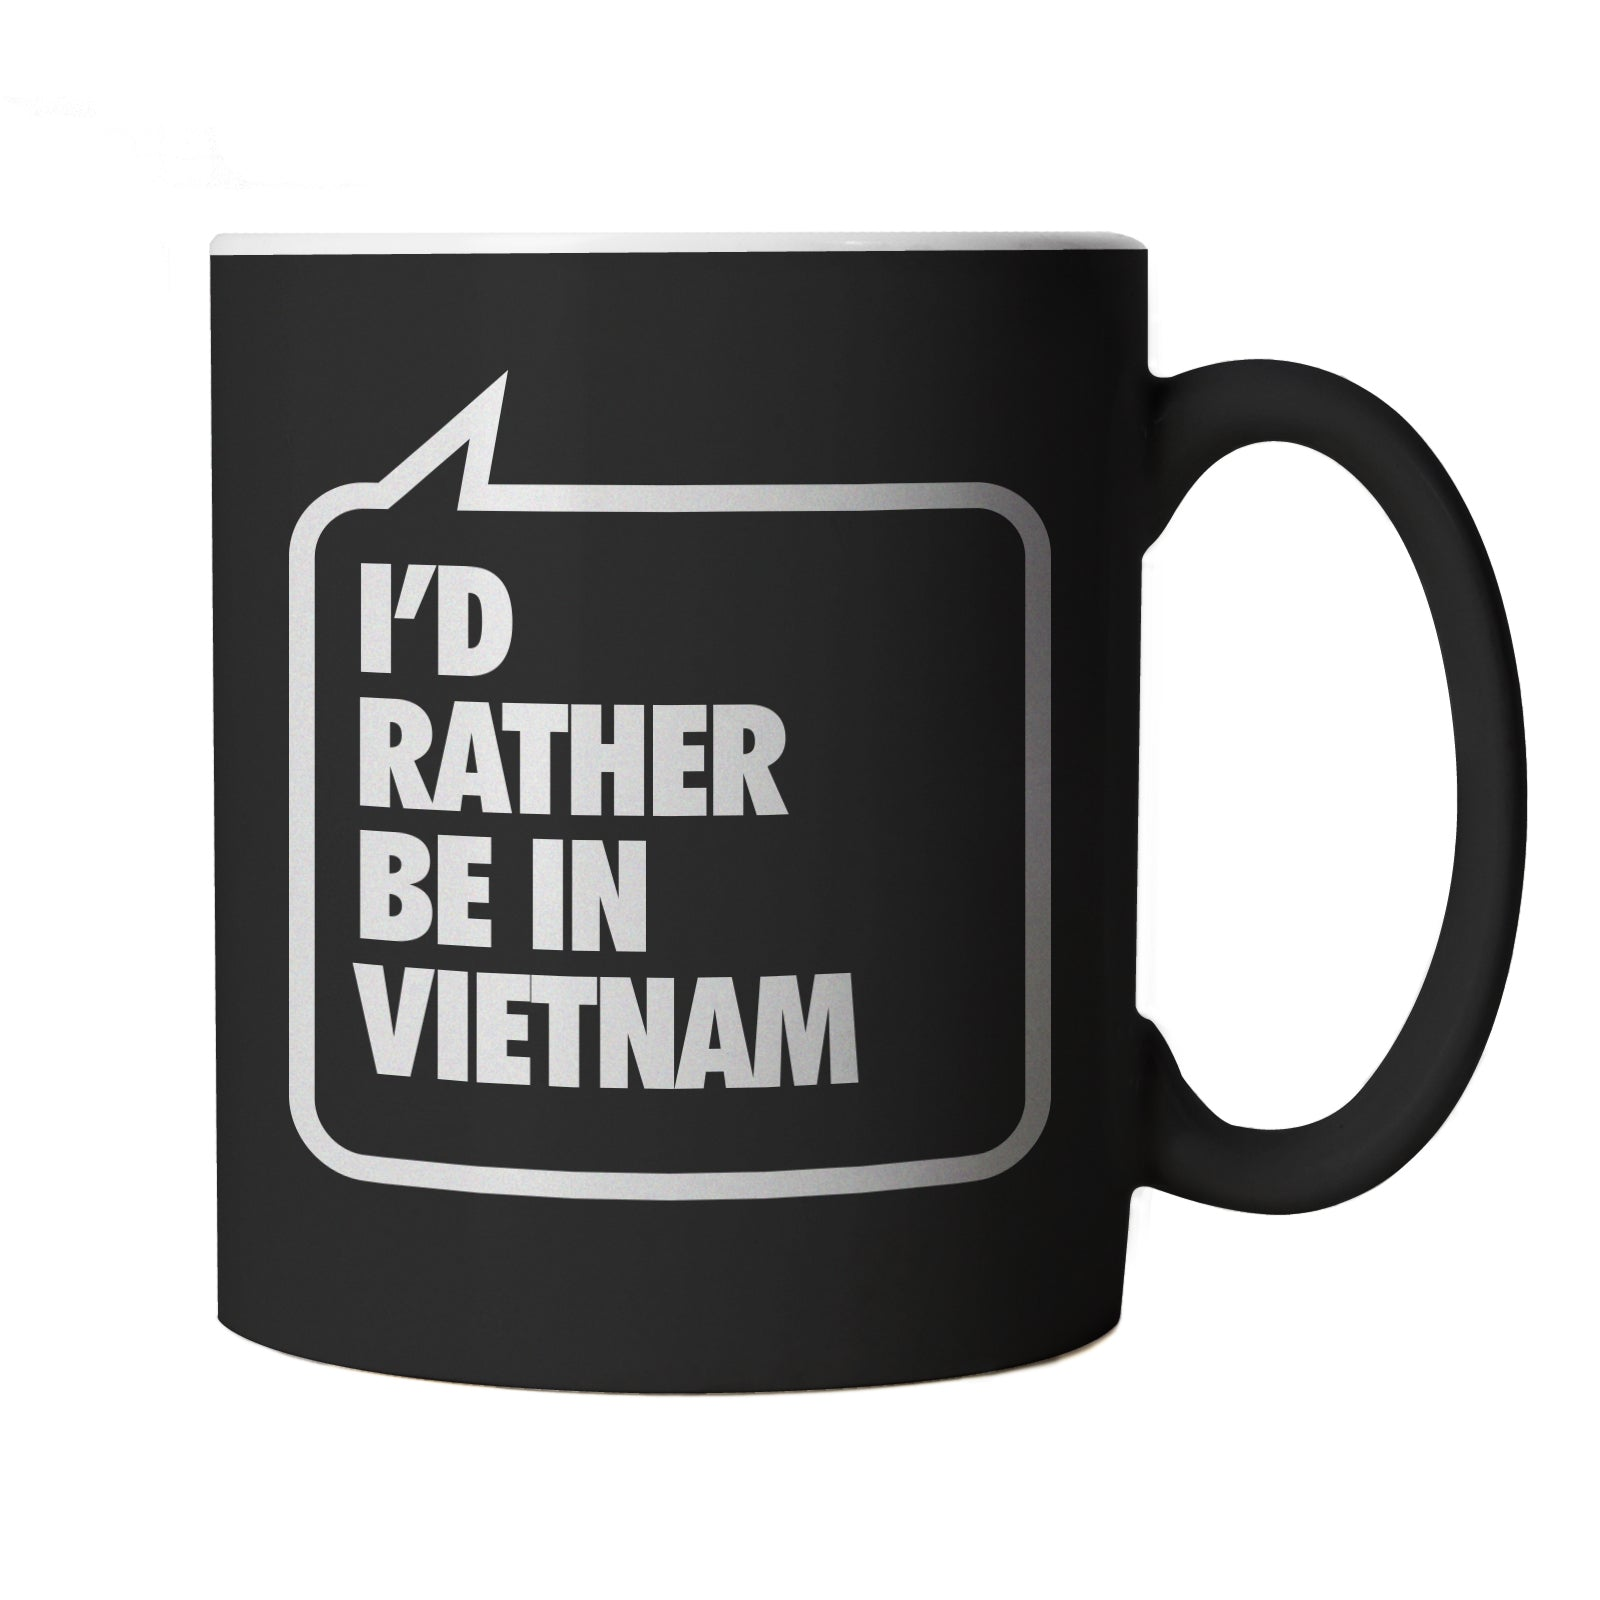 I'd Rather Be In Vietnam, Black Mug